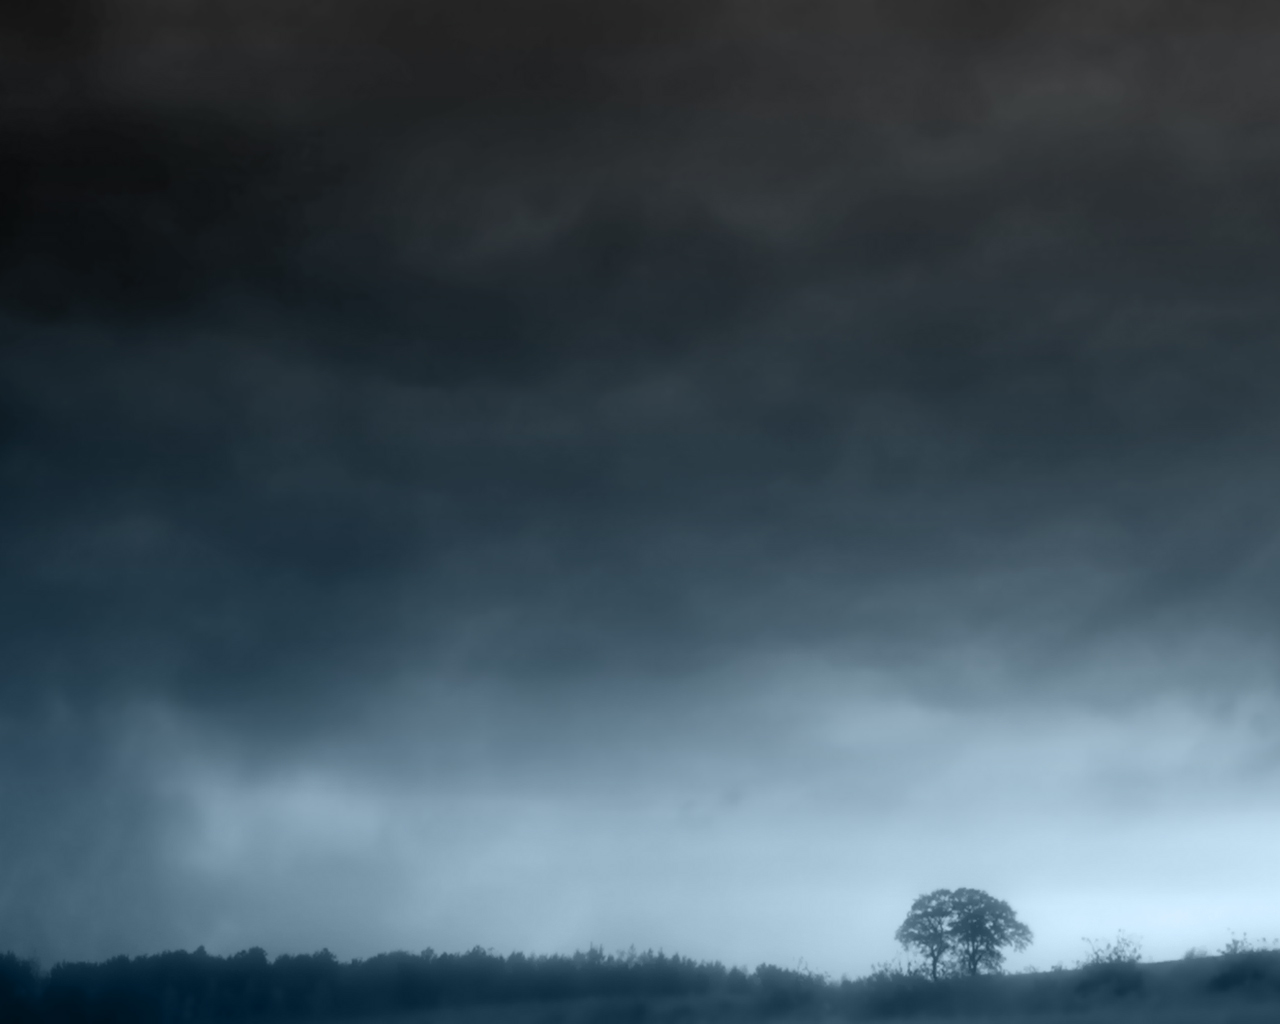 Gathering storm wallpaper from Other wallpapers